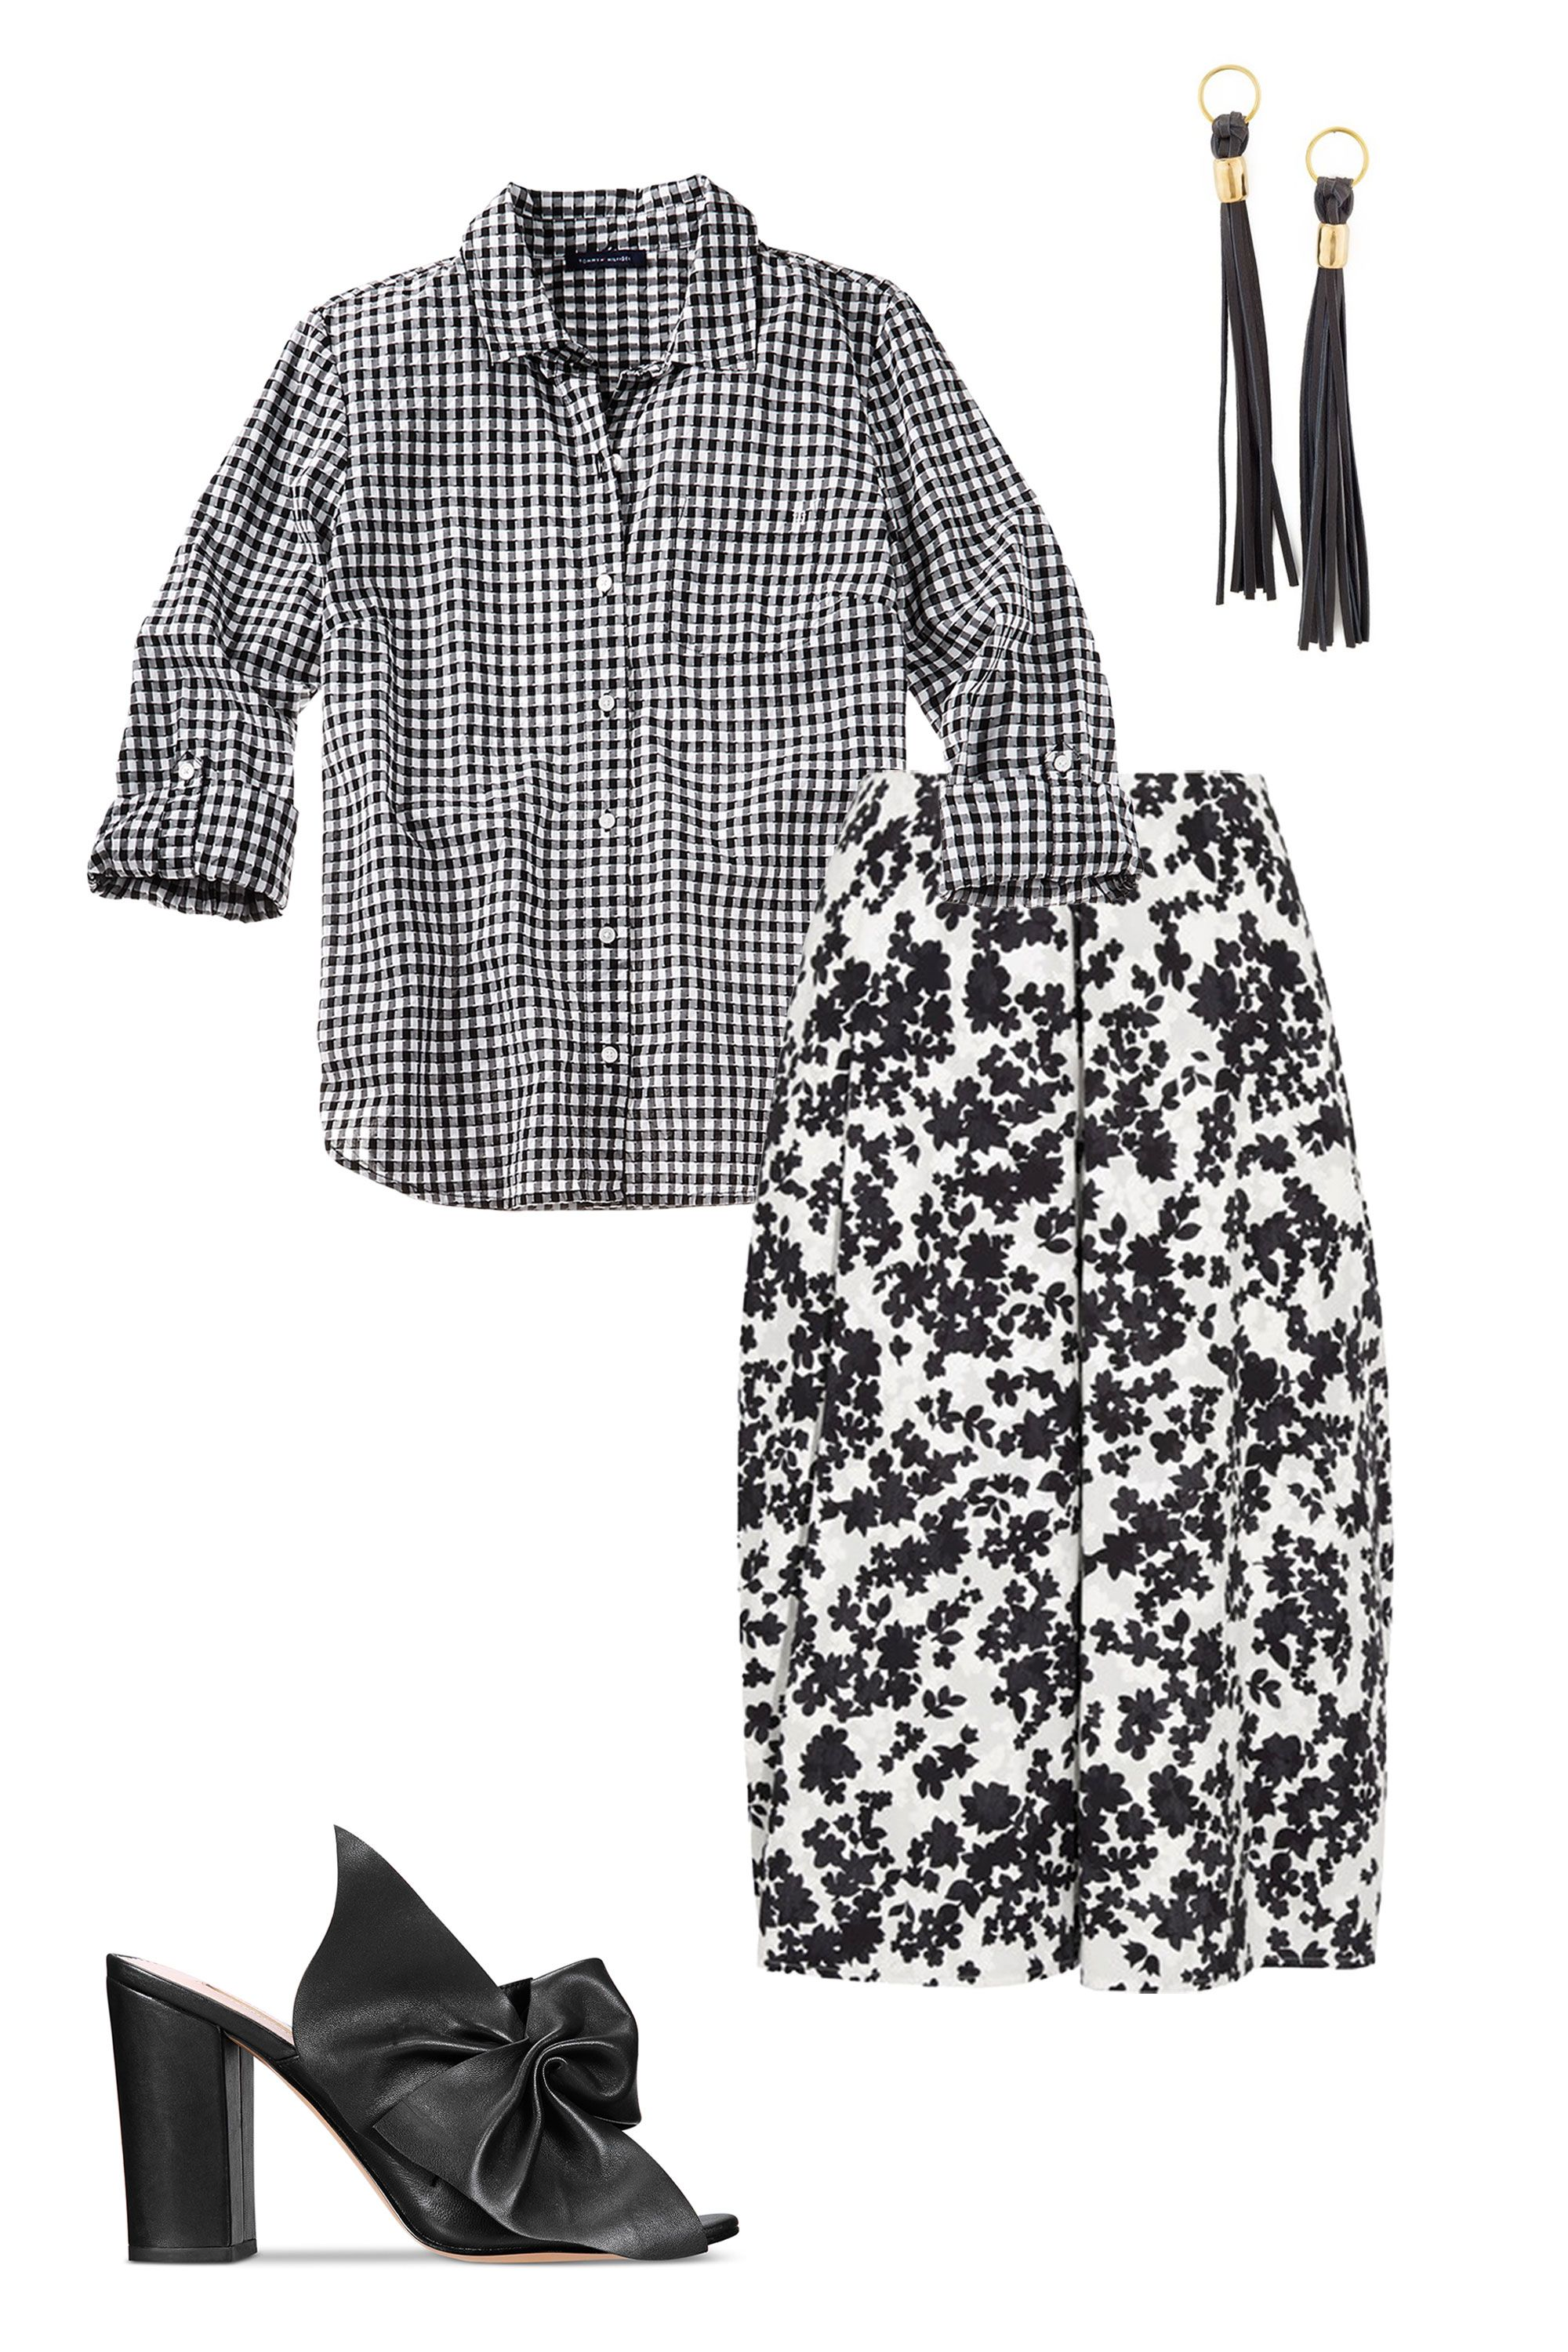 "<p>The standard pencil-skirt-and-button-down combo is taken up a notch thanks to a melange of pattern and print. The key to keeping it polished? A black-and-white palette and architectural leather accessories.</p><p><strong data-verified=""redactor"" data-redactor-tag=""strong"">BUY IT:</strong><span class=""redactor-invisible-space"" data-verified=""redactor"" data-redactor-tag=""span"" data-redactor-class=""redactor-invisible-space""> Tommy Hilfiger shirt, $60; <a href=""https://www.macys.com/shop/product/tommy-hilfiger-cotton-houndstooth-utility-shirt-created-for-macys?ID=4939995&CategoryID=255&cm_mmc=carat_dis-_-sep2_nopro_auth_rtw_ffash_tentpole_display_w7080033_11696-_-1339154-_-09052017_10052017"" target=""_blank"" data-tracking-id=""recirc-text-link"">macys.com</a>. Jill Sander skirt, $960; <a href=""https://www.net-a-porter.com/us/en/product/884130/Jil_Sander/floral-print-cotton-poplin-midi-skirt"" target=""_blank"" data-tracking-id=""recirc-text-link"">net-a-porter.com</a>. Pamela Love earrings, $240; <a href=""https://www.shopbop.com/ximena-earrings-pamela-love/vp/v=1/1528174179.htm"" target=""_blank"" data-tracking-id=""recirc-text-link"">shopbop.com</a>. Avec Les Filles slide, $178; <a href=""https://www.macys.com/shop/product/avec-les-filles-marie-bow-block-heel-slides?ID=4398935&CategoryID=13247&cm_mmc=carat_dis-_-sep2_nopro_auth_rtw_ffash_tentpole_display_w7080033_11696-_-1339154-_-09052017_10052017"" target=""_blank"" data-tracking-id=""recirc-text-link"">macys.com</a></span><br></p>"